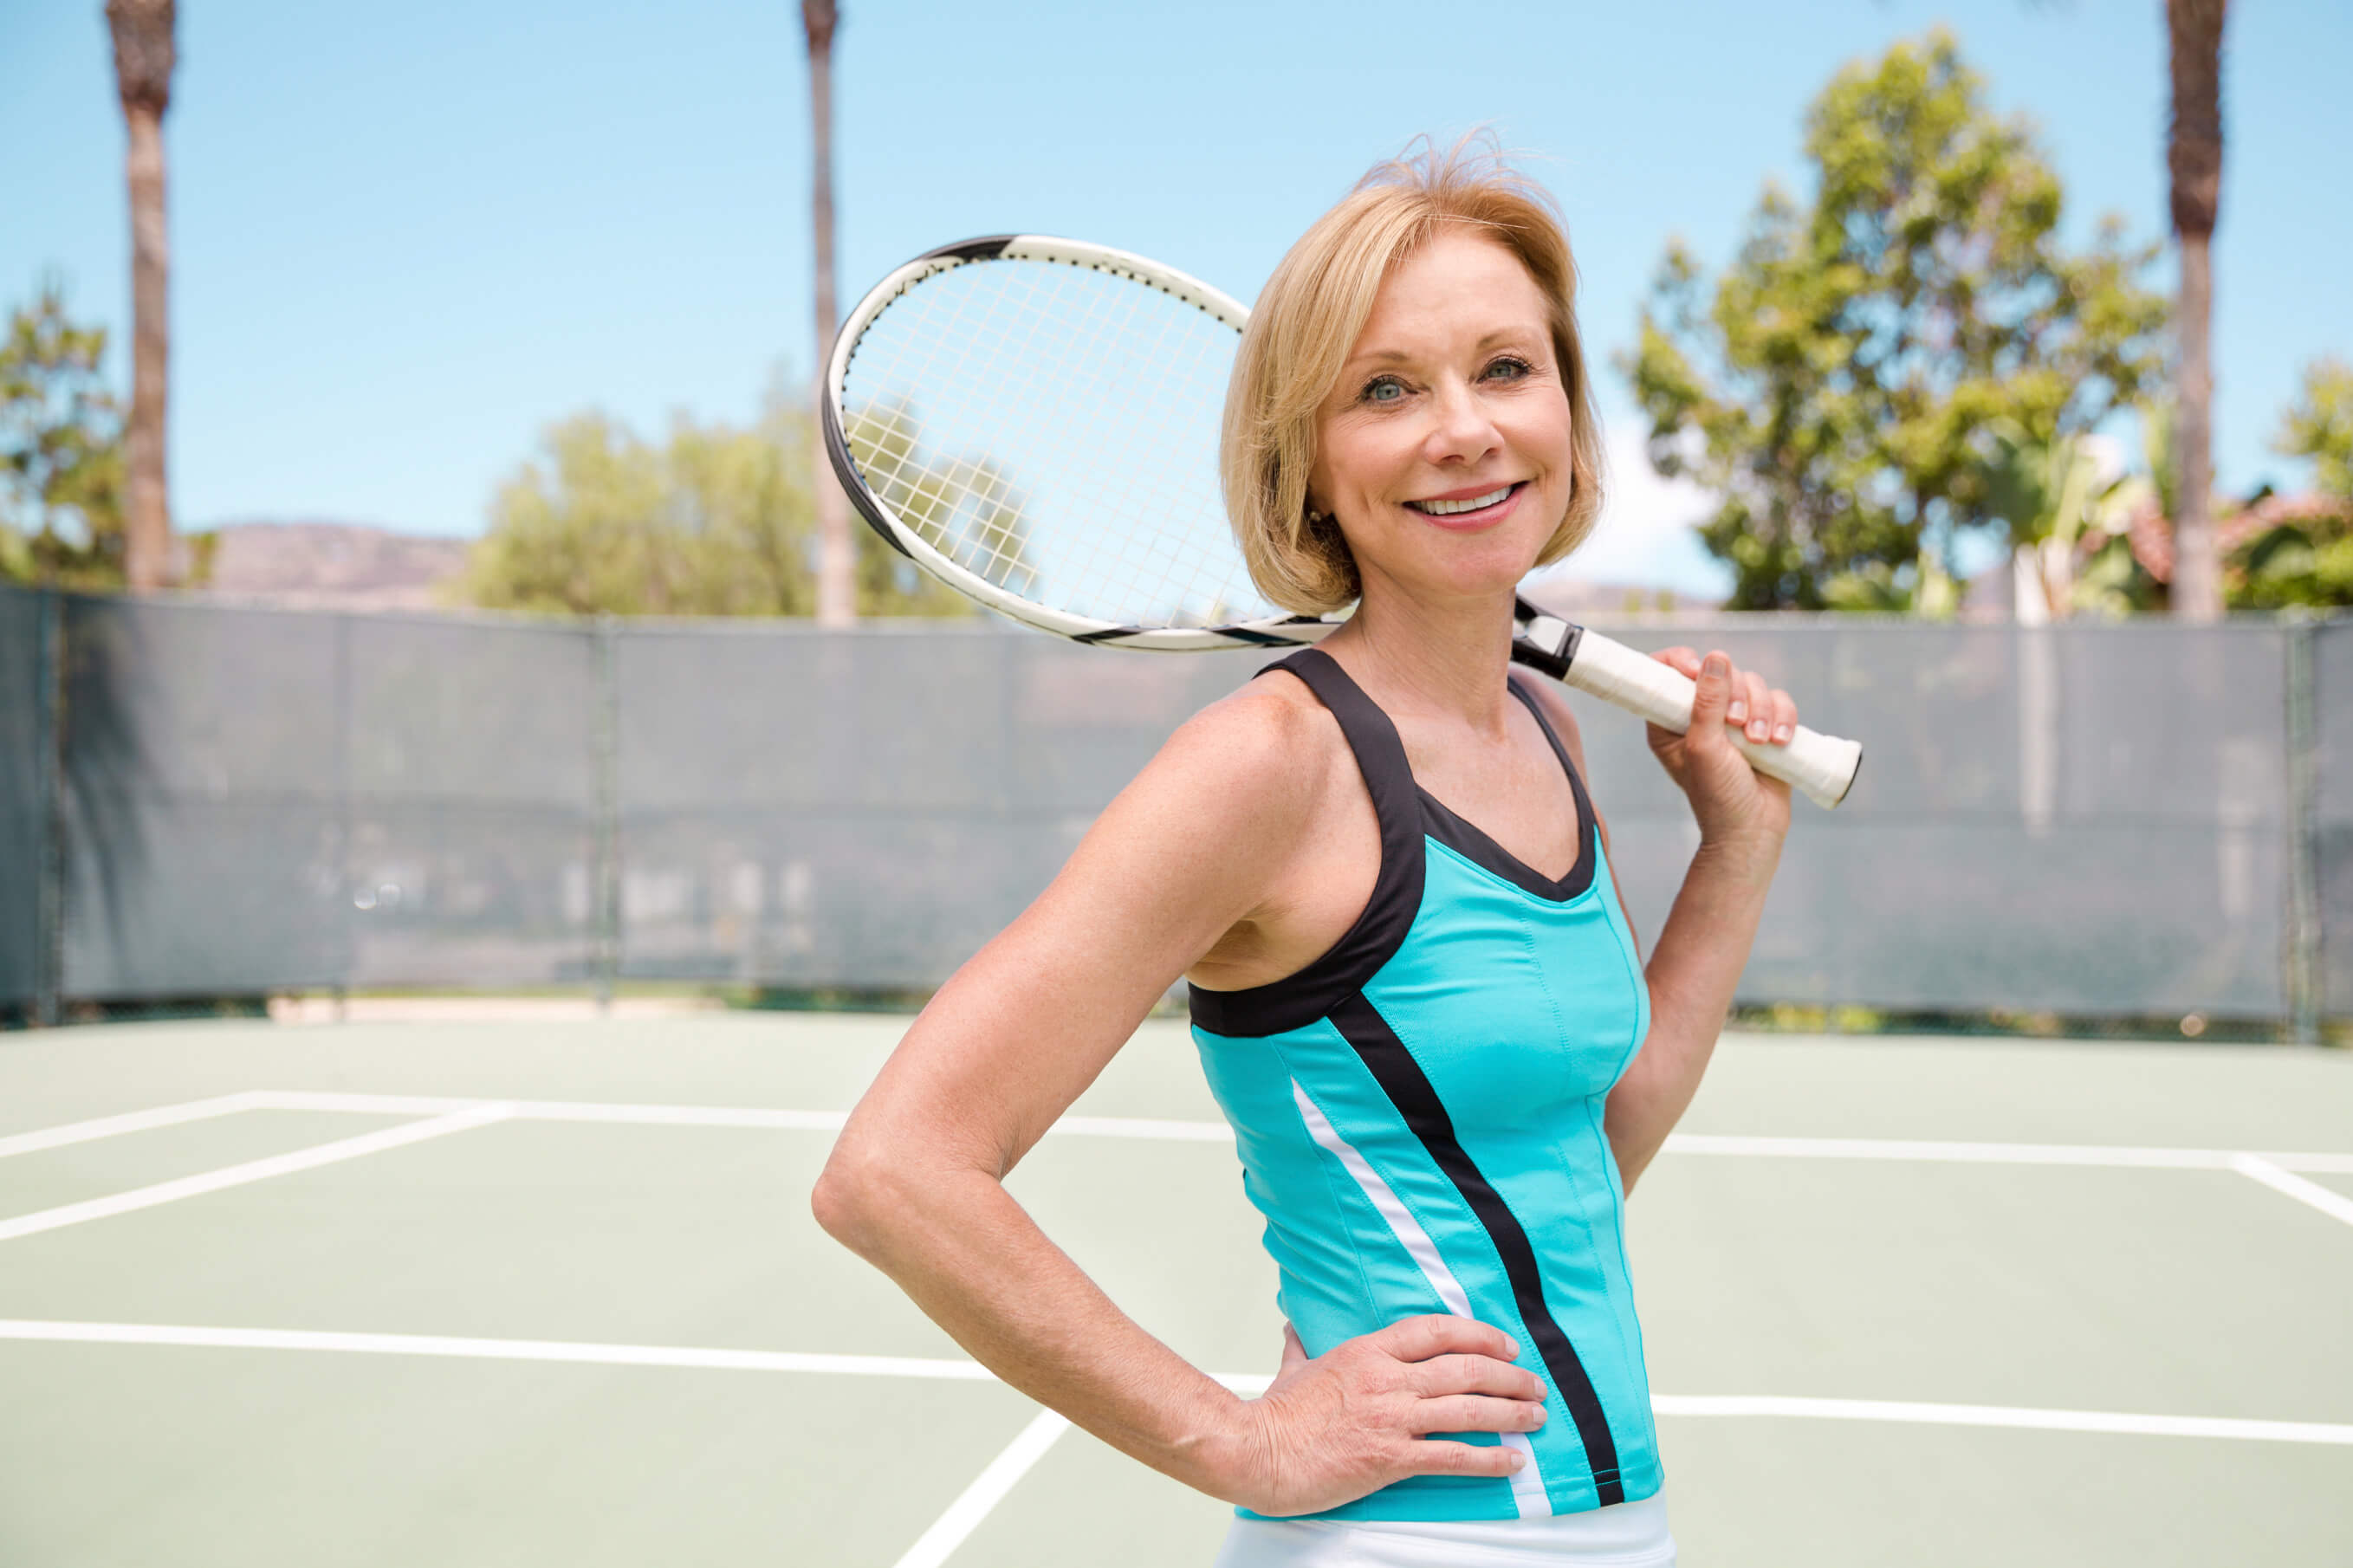 Active mature women playing tennis